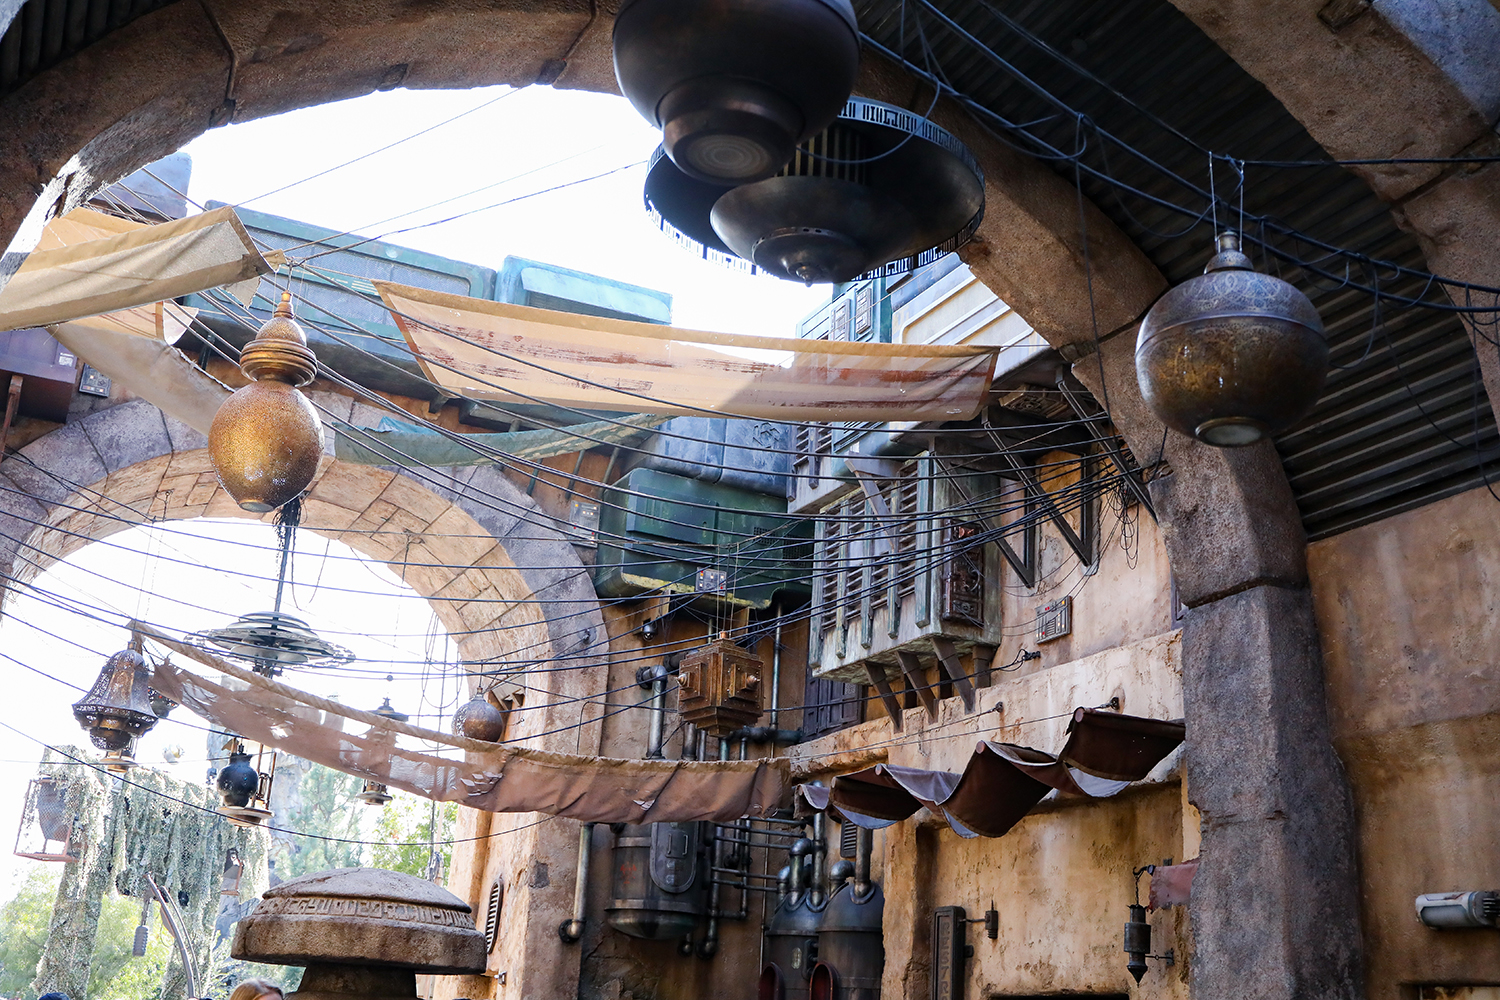 Black Spire Outpost Shops: Star Wars Land